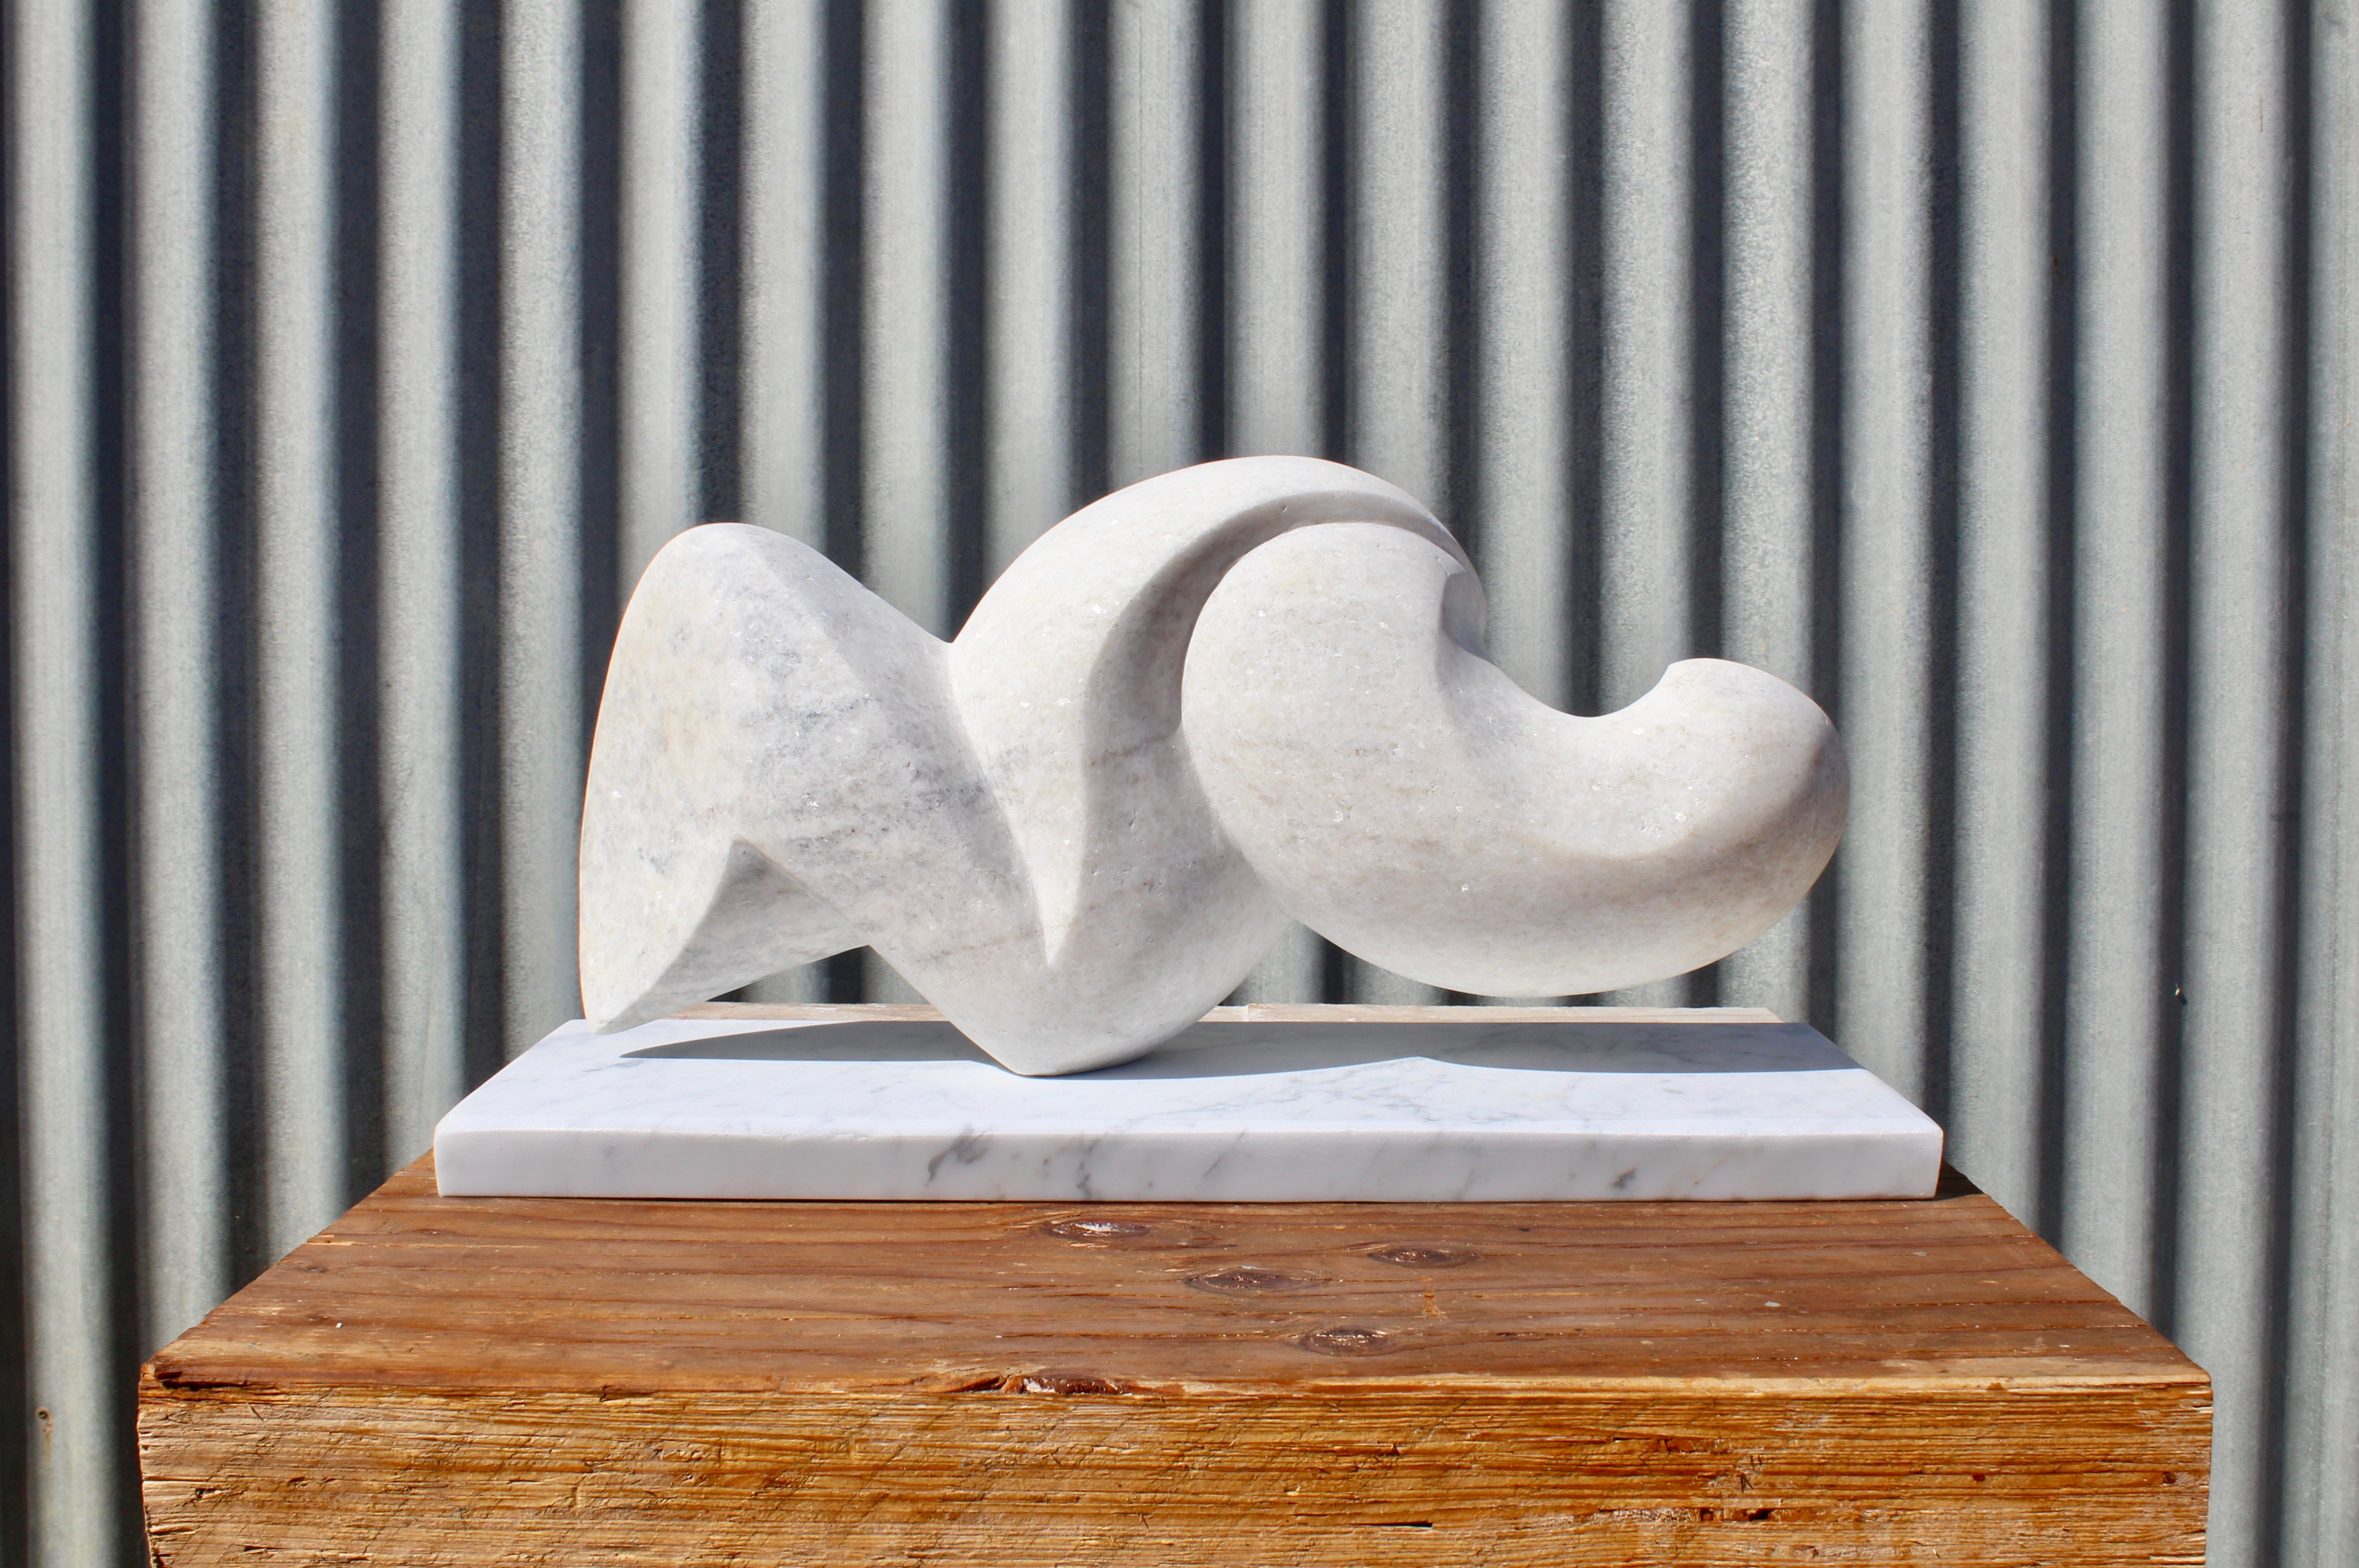 marble sculpture, fine art, abstract sculpture, marble